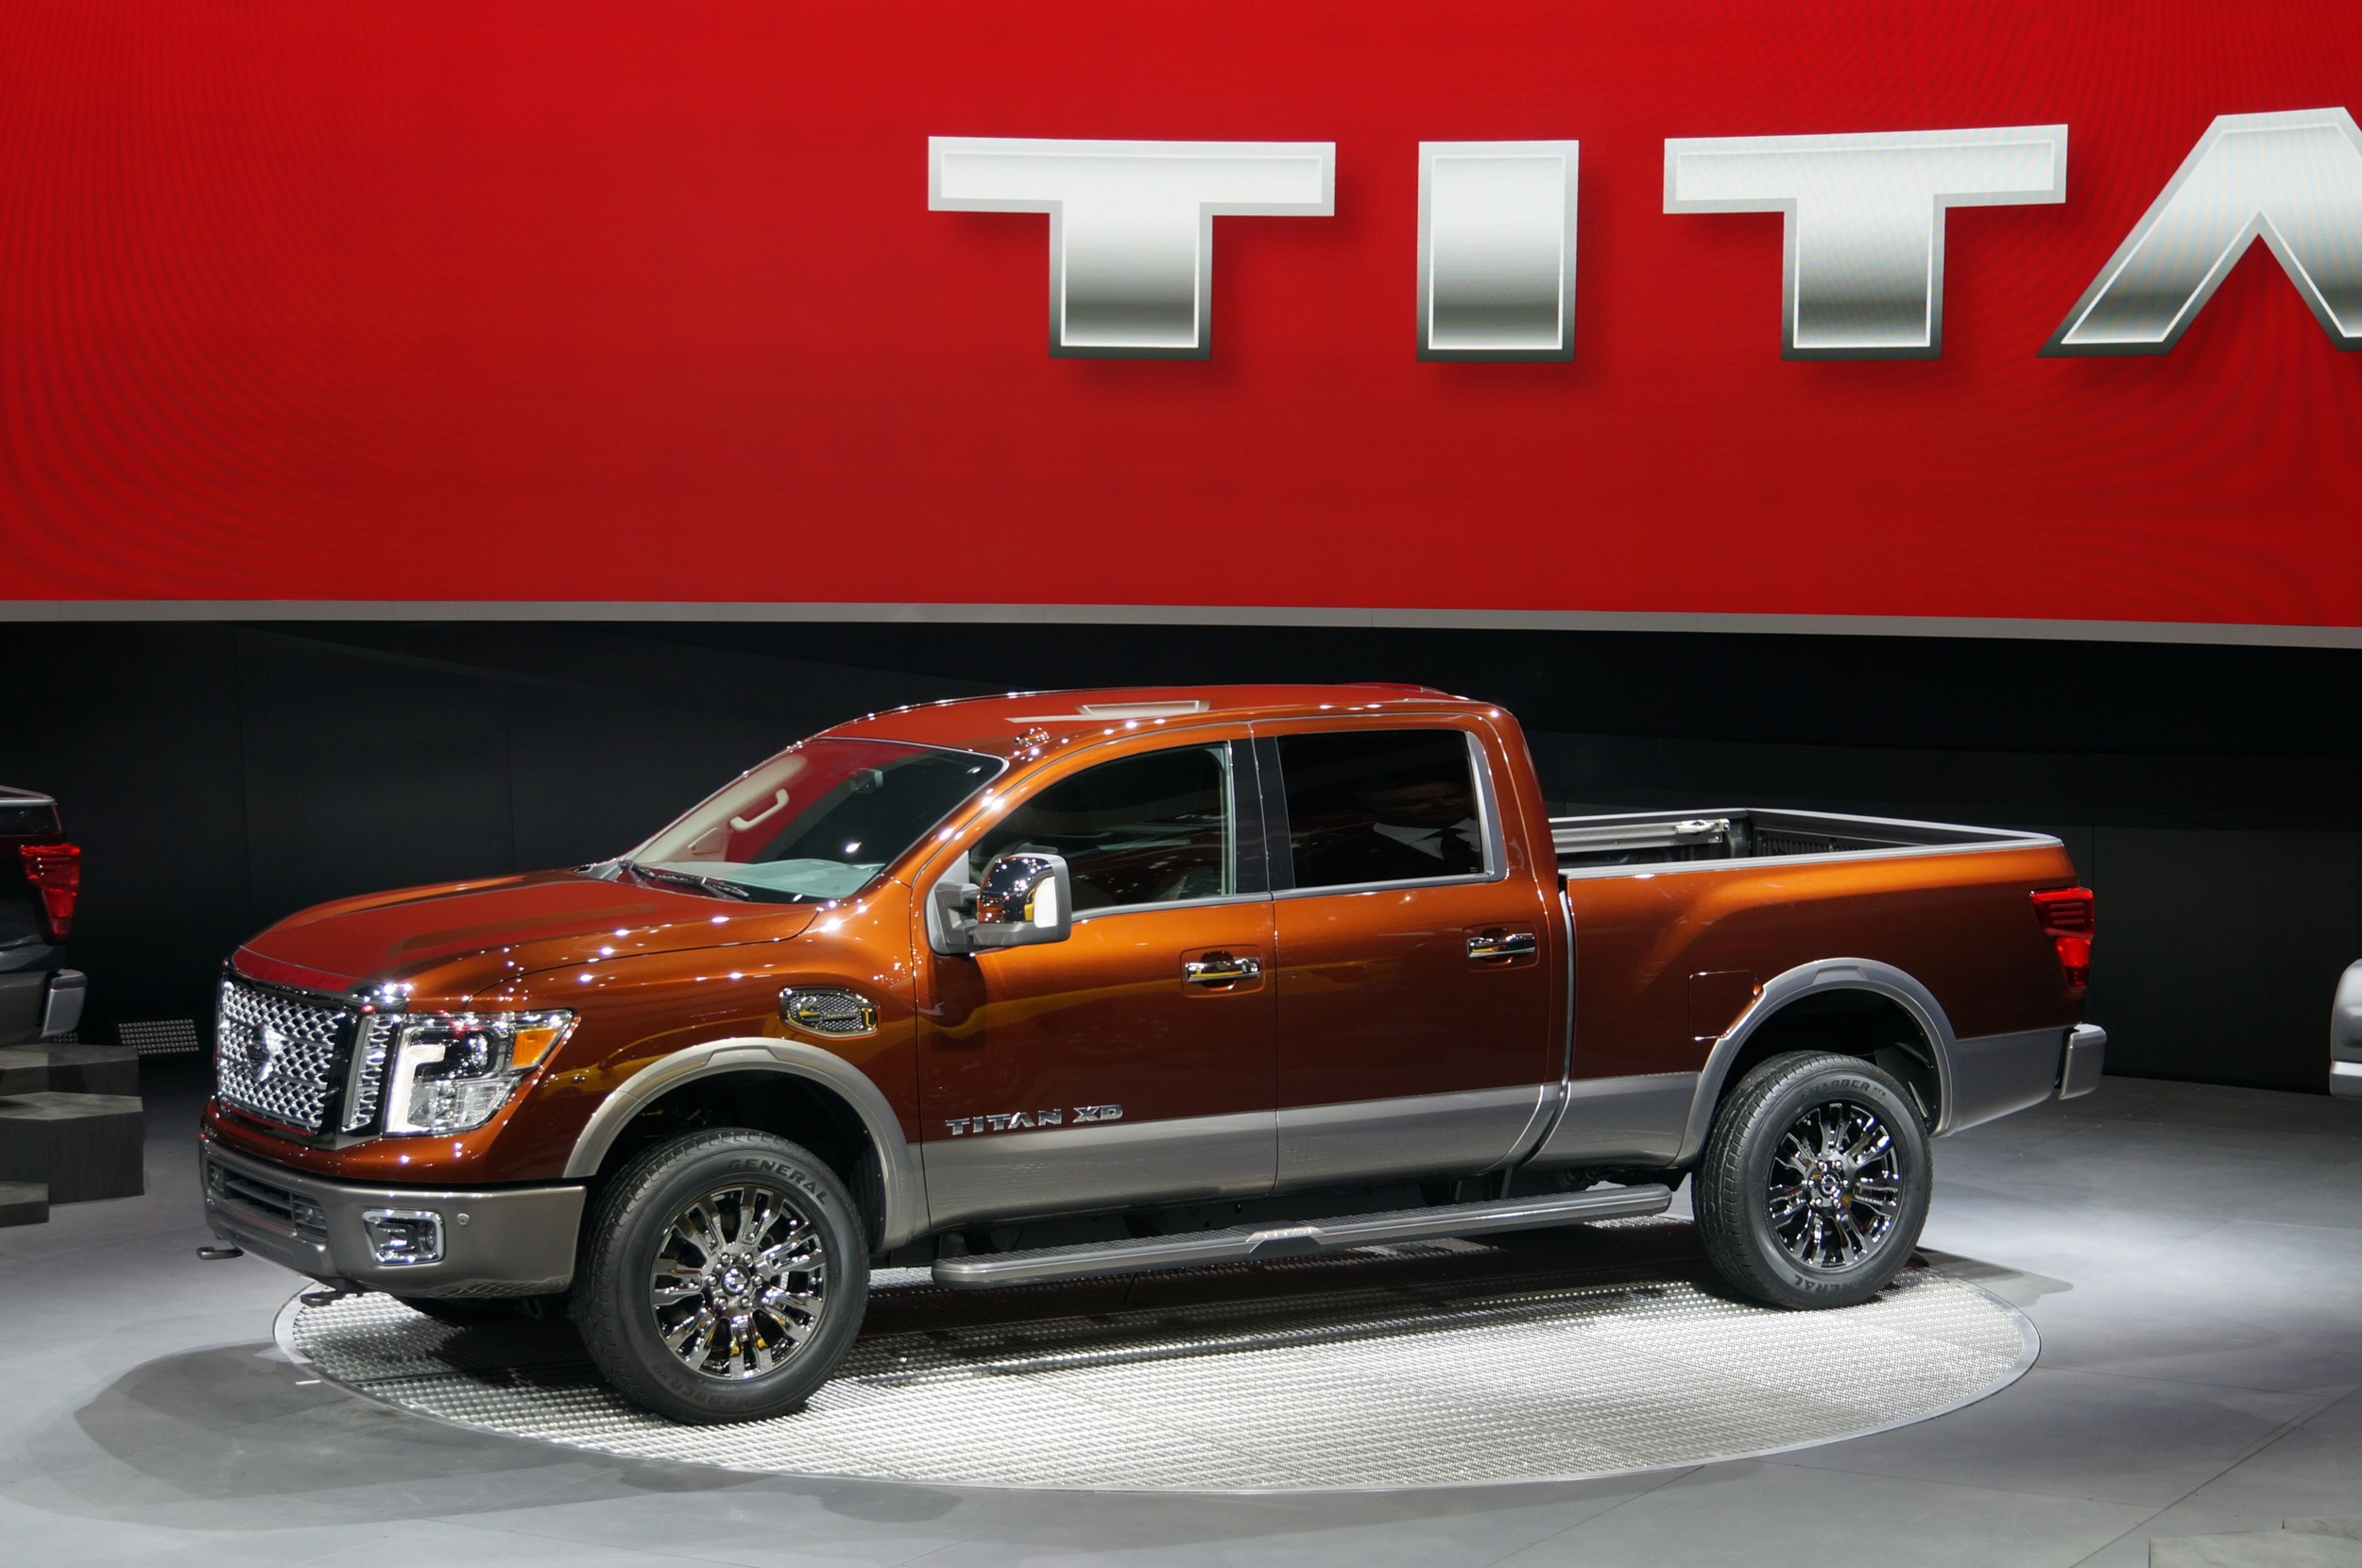 The New Nissan Titan XD Truck Is Getting 17 7 MPG